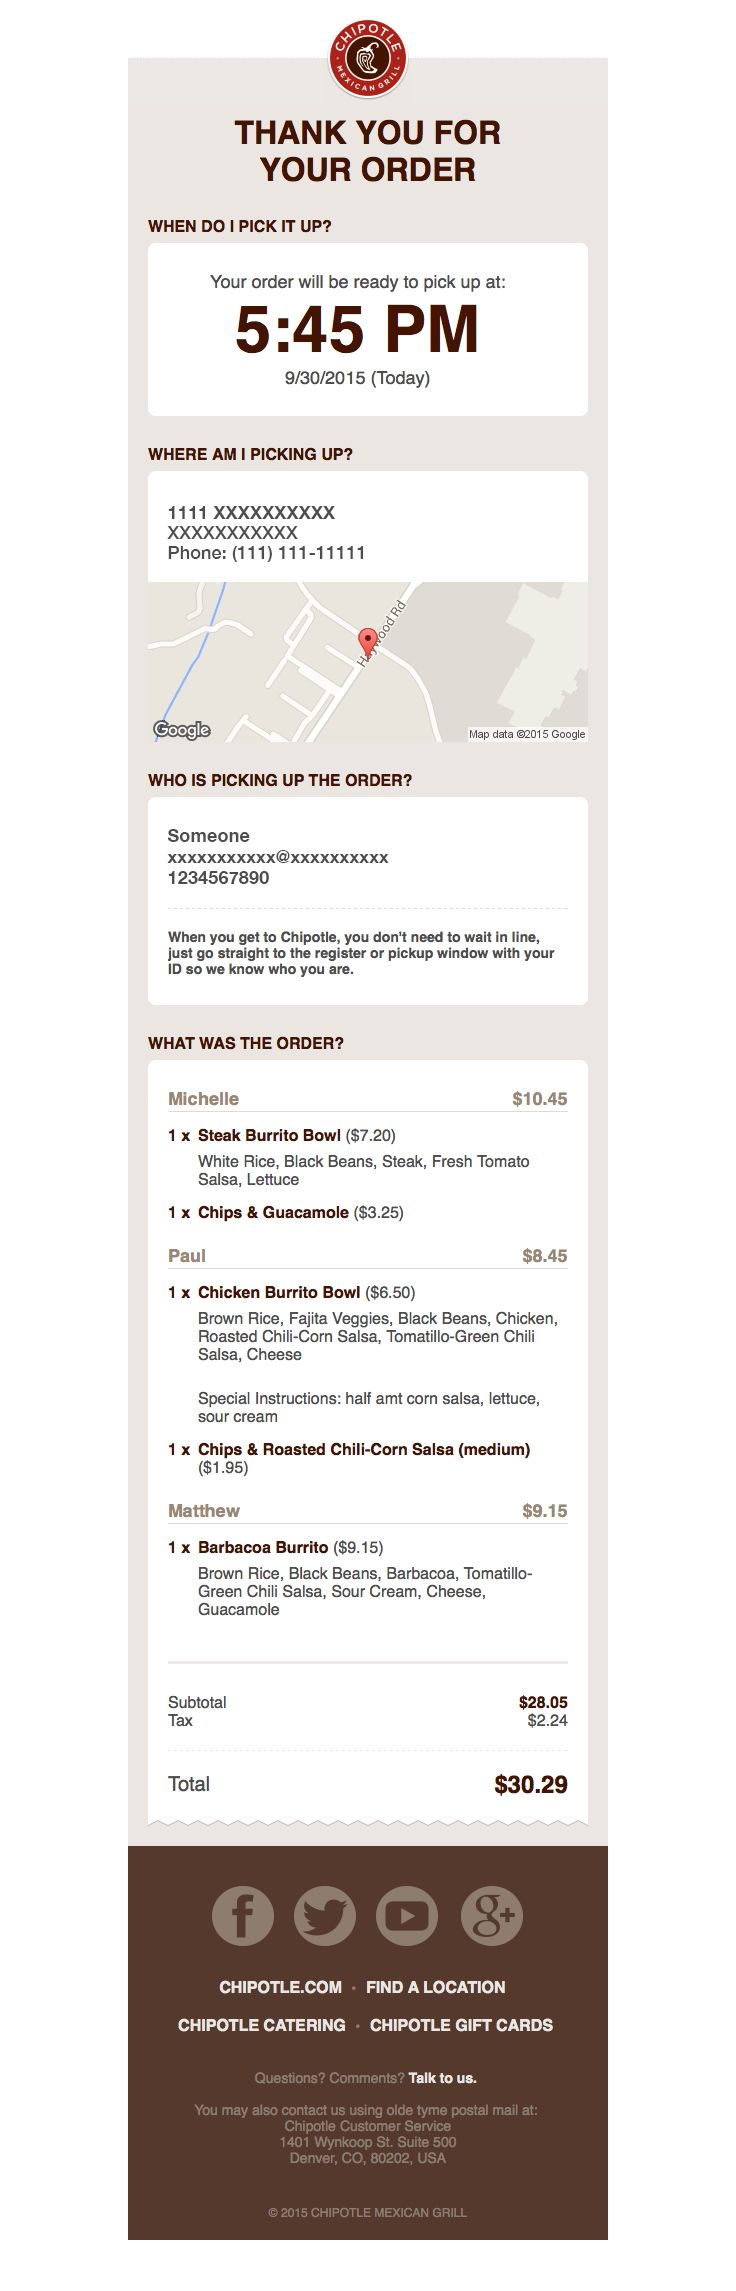 @chipotlemg  sent this email with the subject line: Thank you for ordering - Oh man! This is such a great piece of simple design. I get to know precisely when I should pick up my tasty food. This is an email that serves y'all! That's my favorite kind of email. Read about this email and find more transactional emails at ReallyGoodEmails.com #ecommerce #receipt #transactional